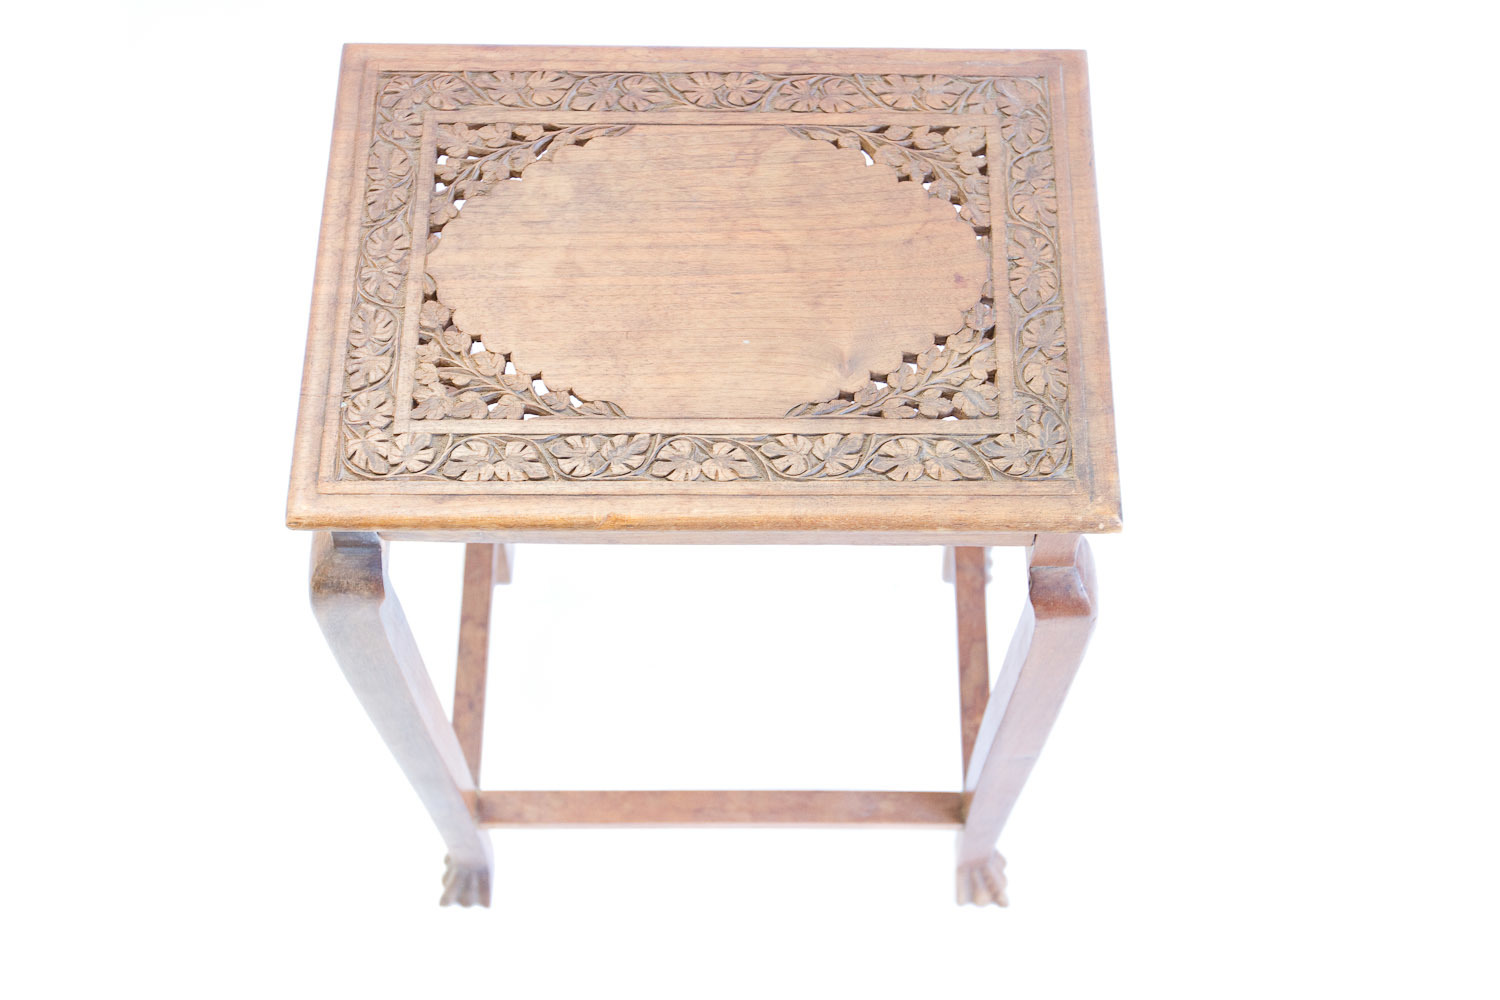 (T-021) LORIEN TABLE